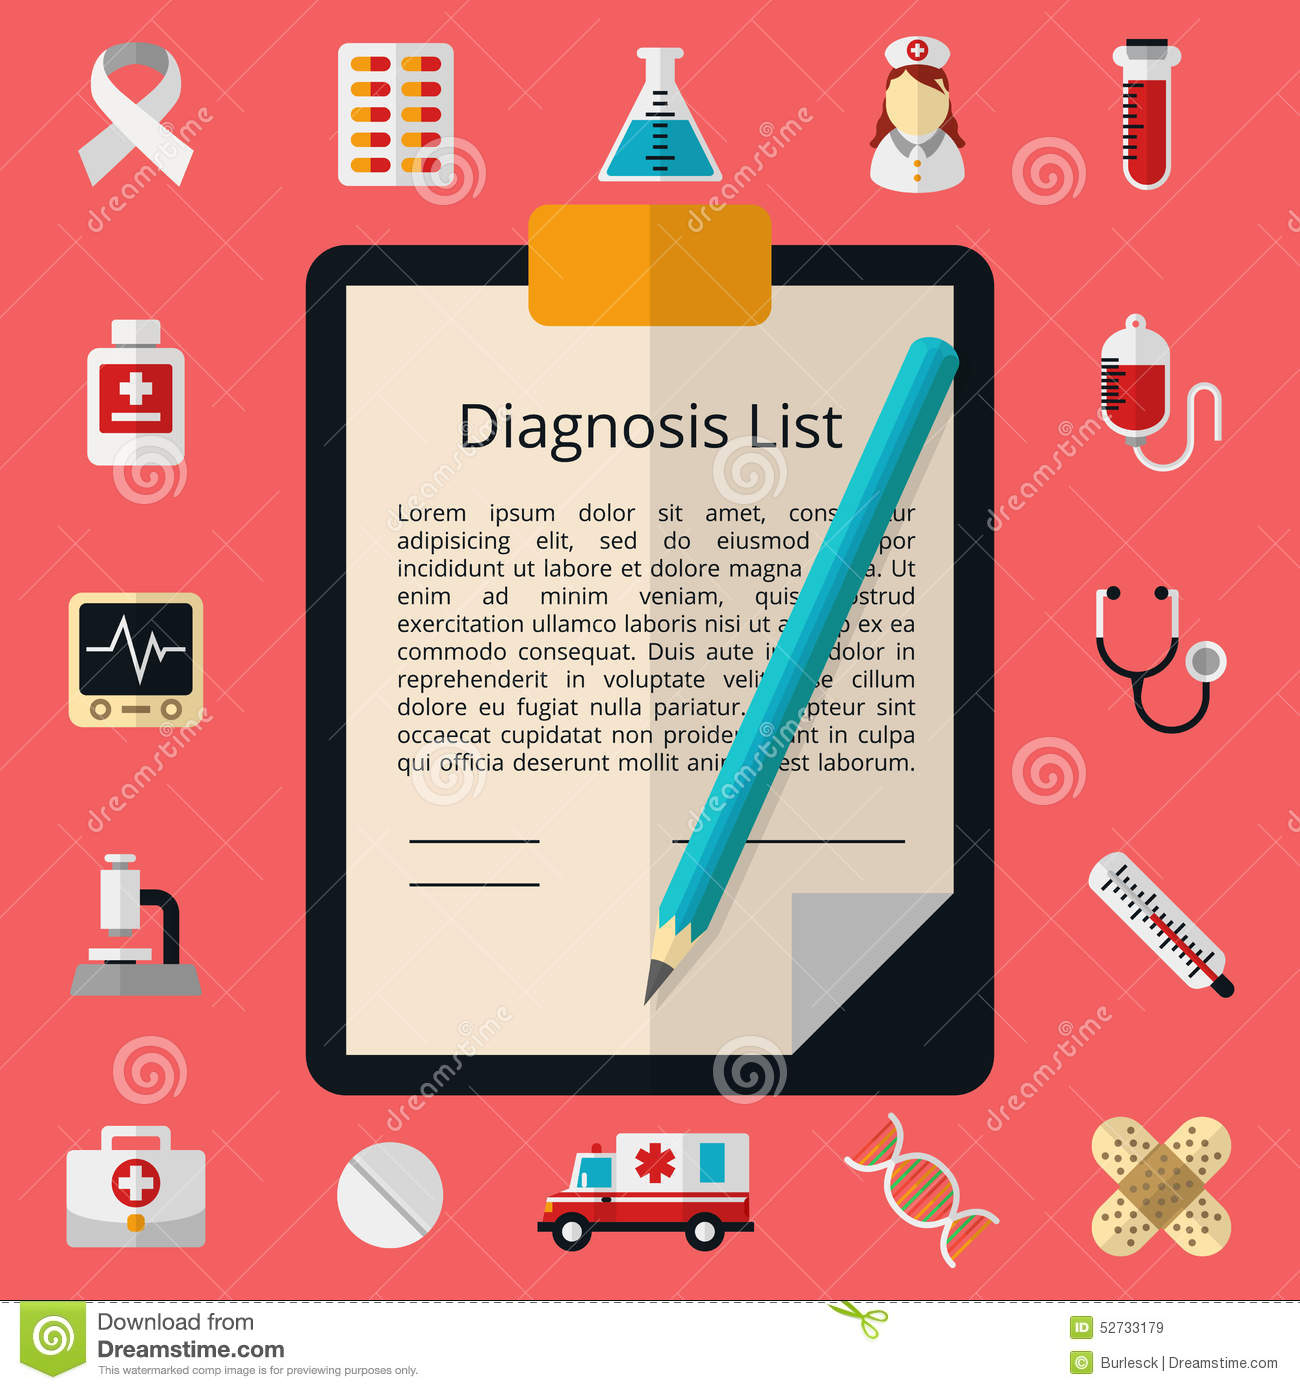 medical-template-background-white-sheet-paper-report-document-design-form-microscope-stethoscope-syringe-52733179.jpg